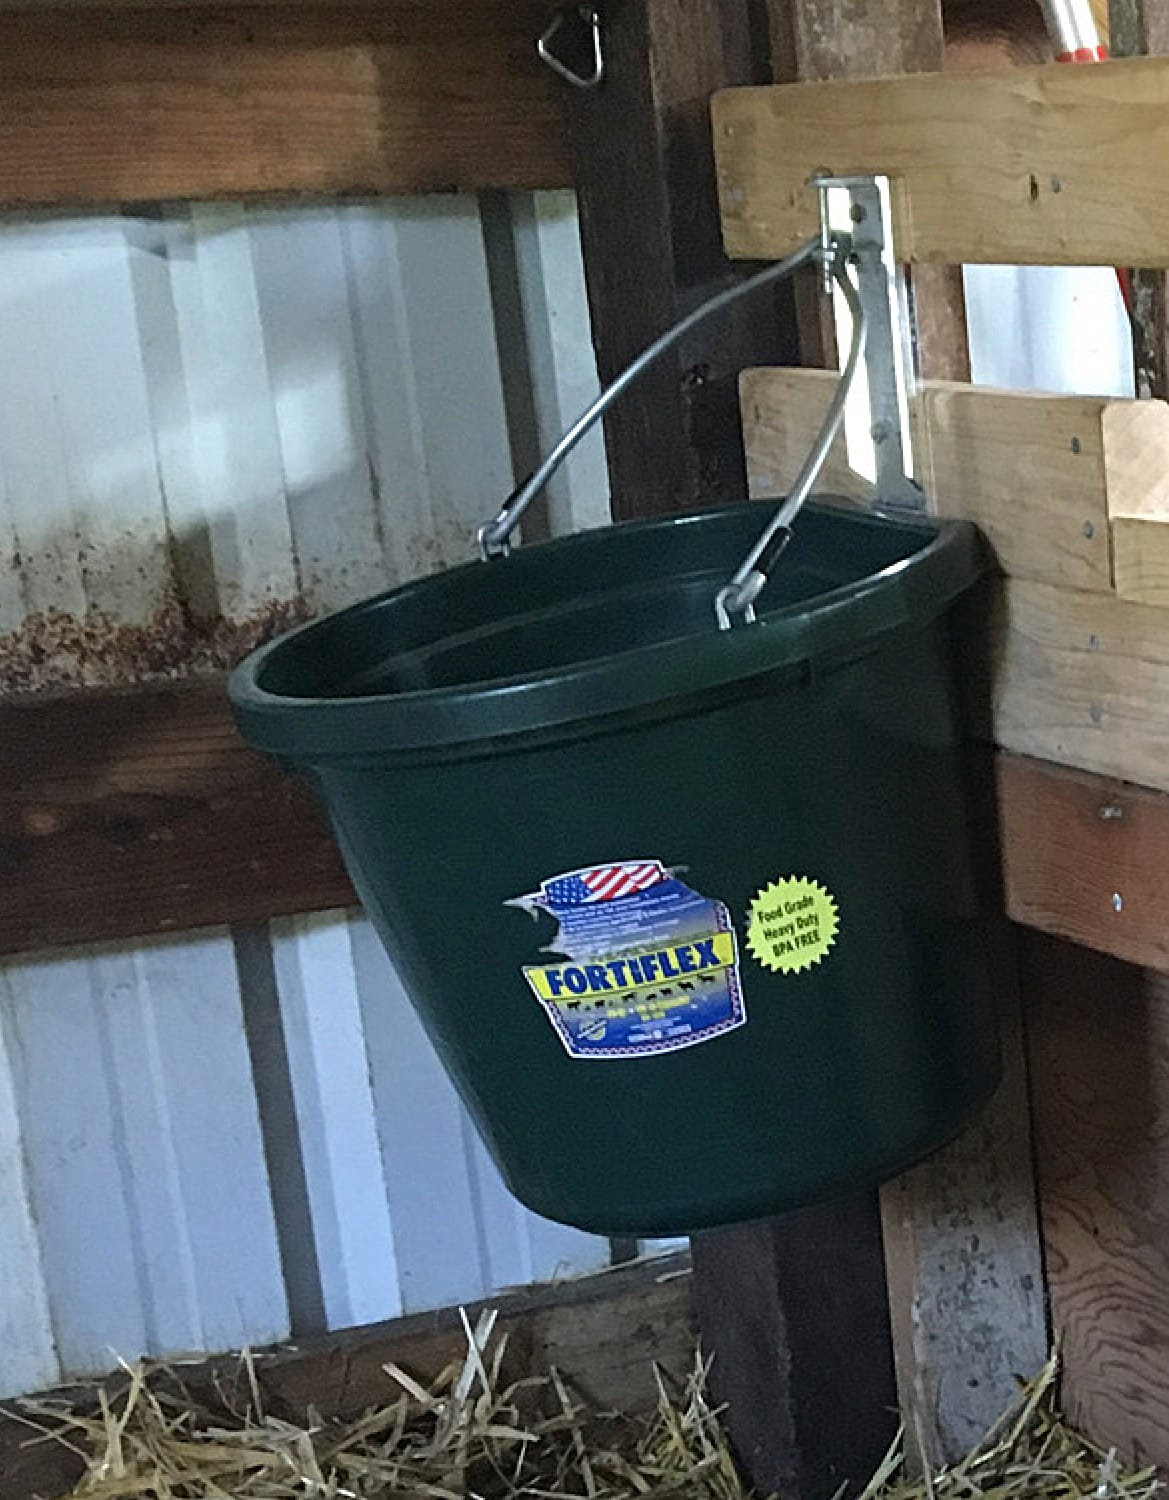 The wall mounted bucket for water.